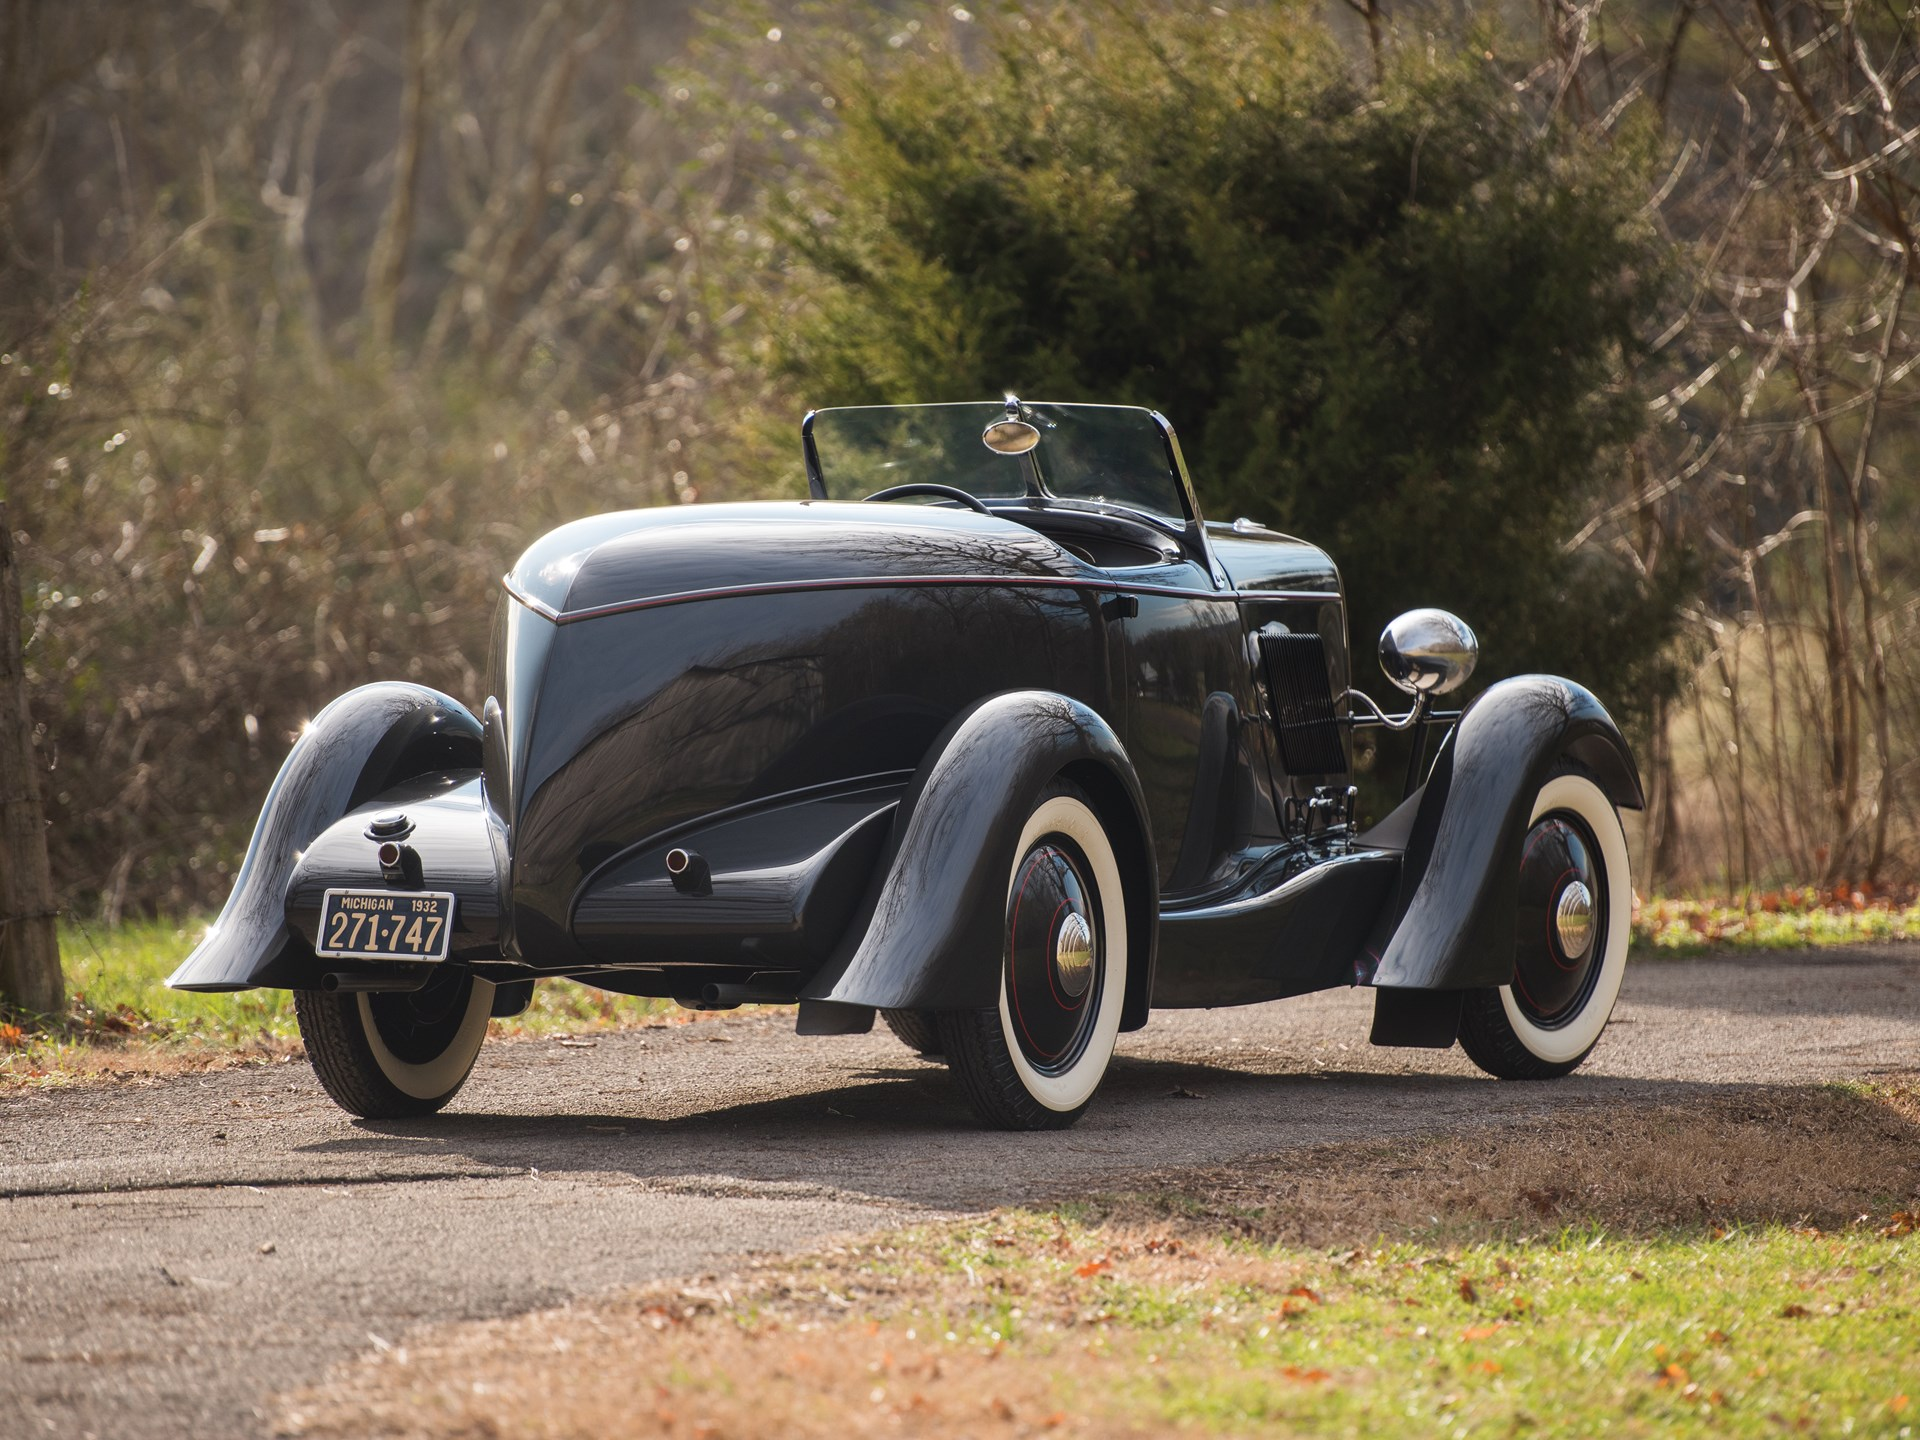 1932 Ford Model 18 Edsel Ford Speedster